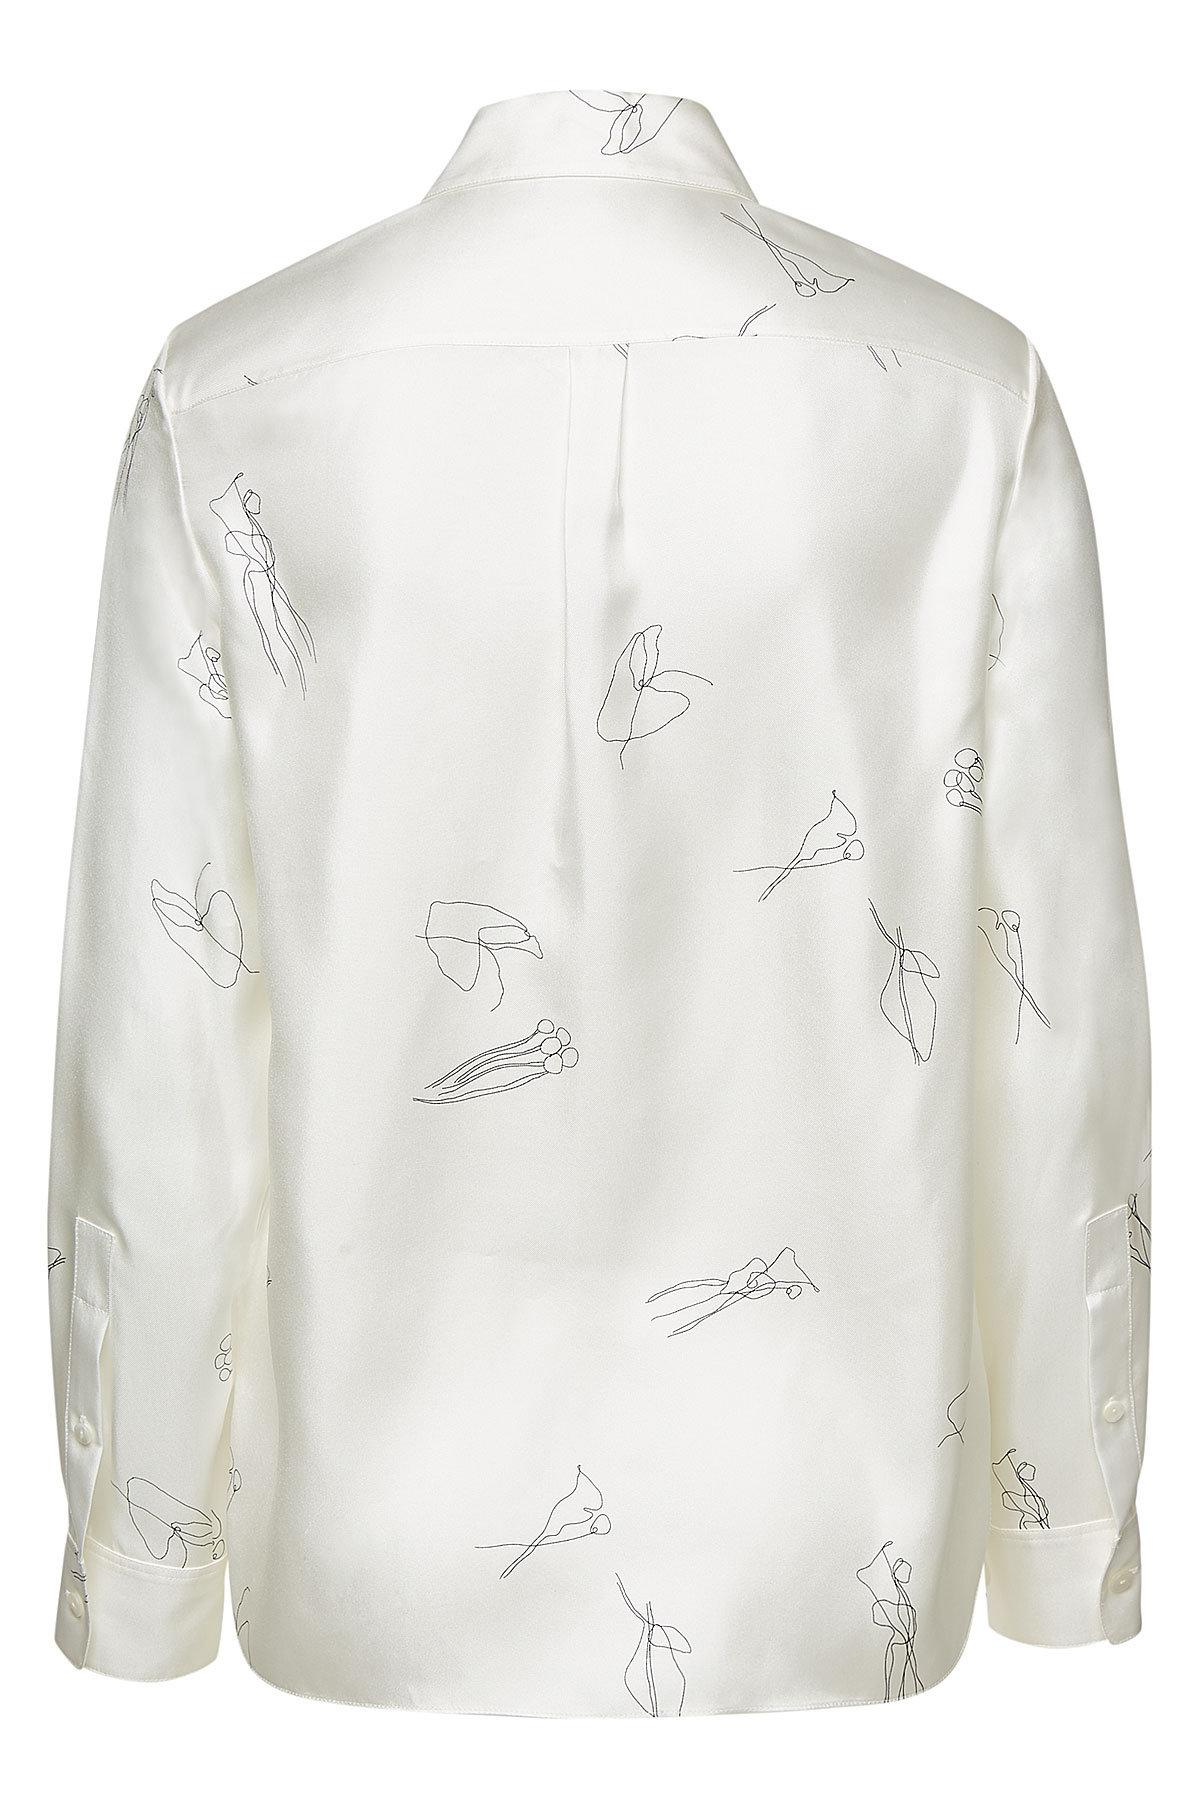 1eb0a73632 Theory - White Silk Twill Classic Straight Shirt With Abstract Print - Lyst.  View fullscreen